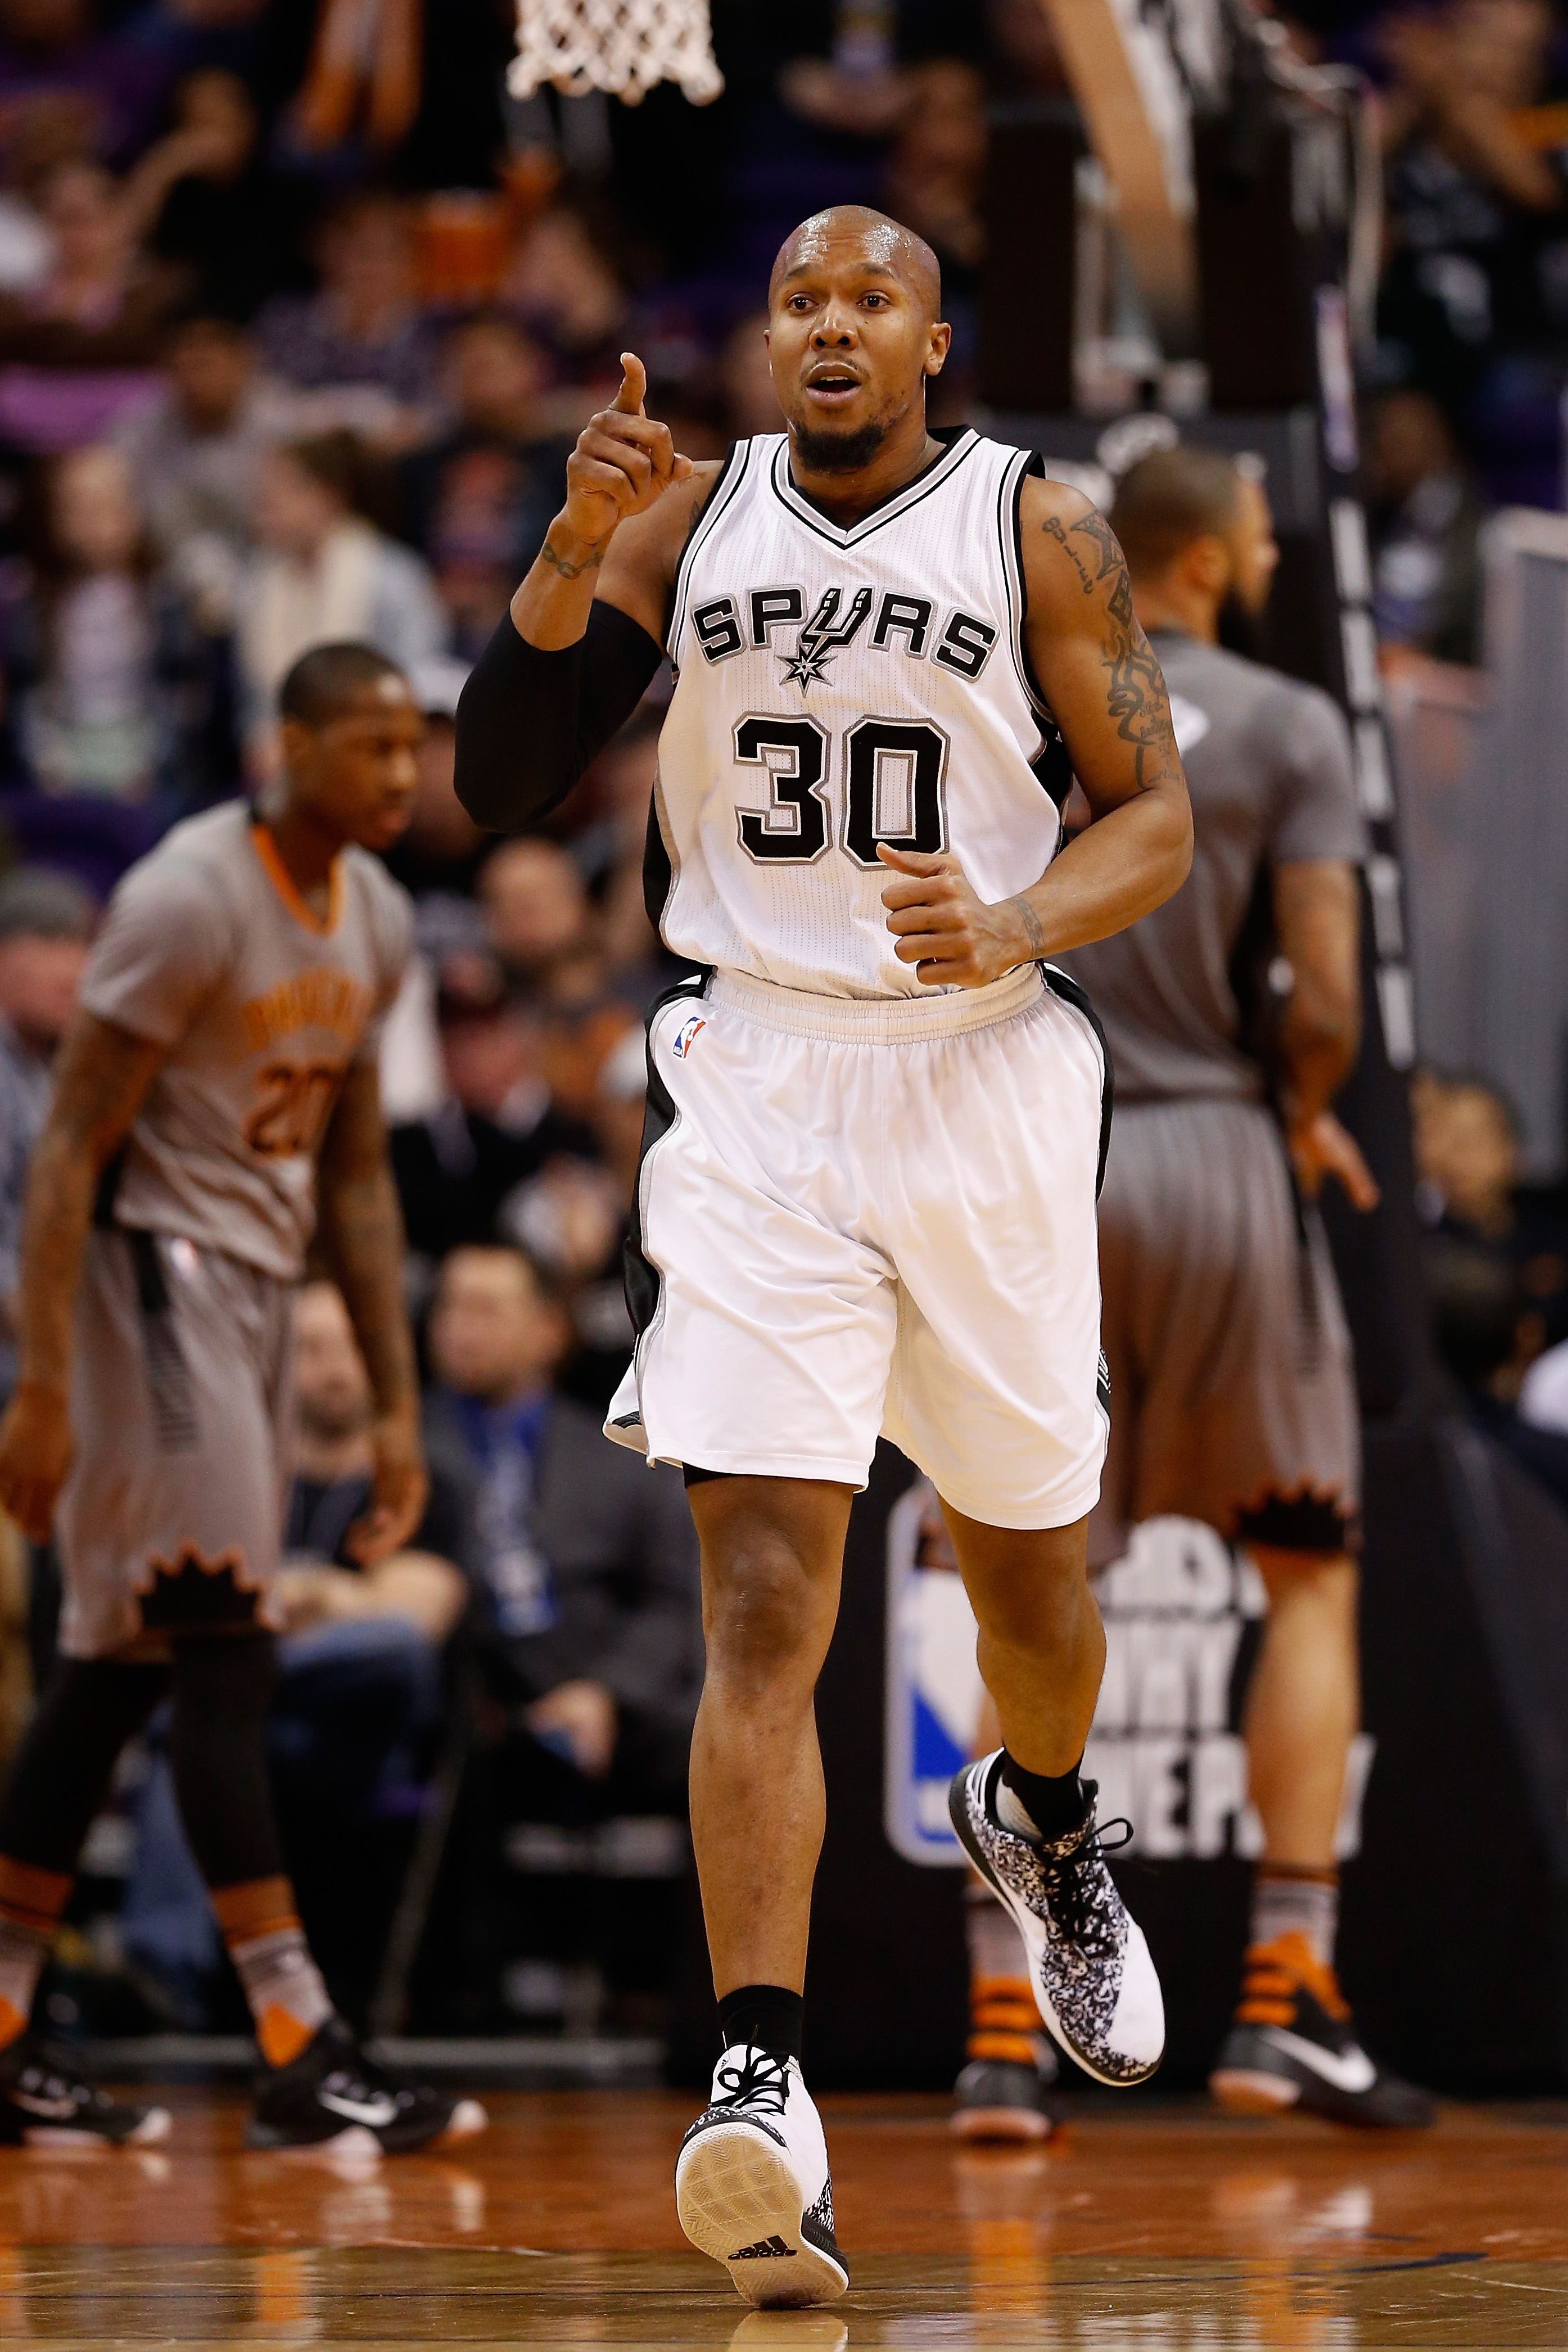 PHOENIX, AZ - JANUARY 21:  David West #30 of the San Antonio Spurs reacts after scoring during the first half of the NBA game against the Phoenix Suns at Talking Stick Resort Arena on January 21, 2016 in Phoenix, Arizona.  (Photo by Christian Petersen/Get